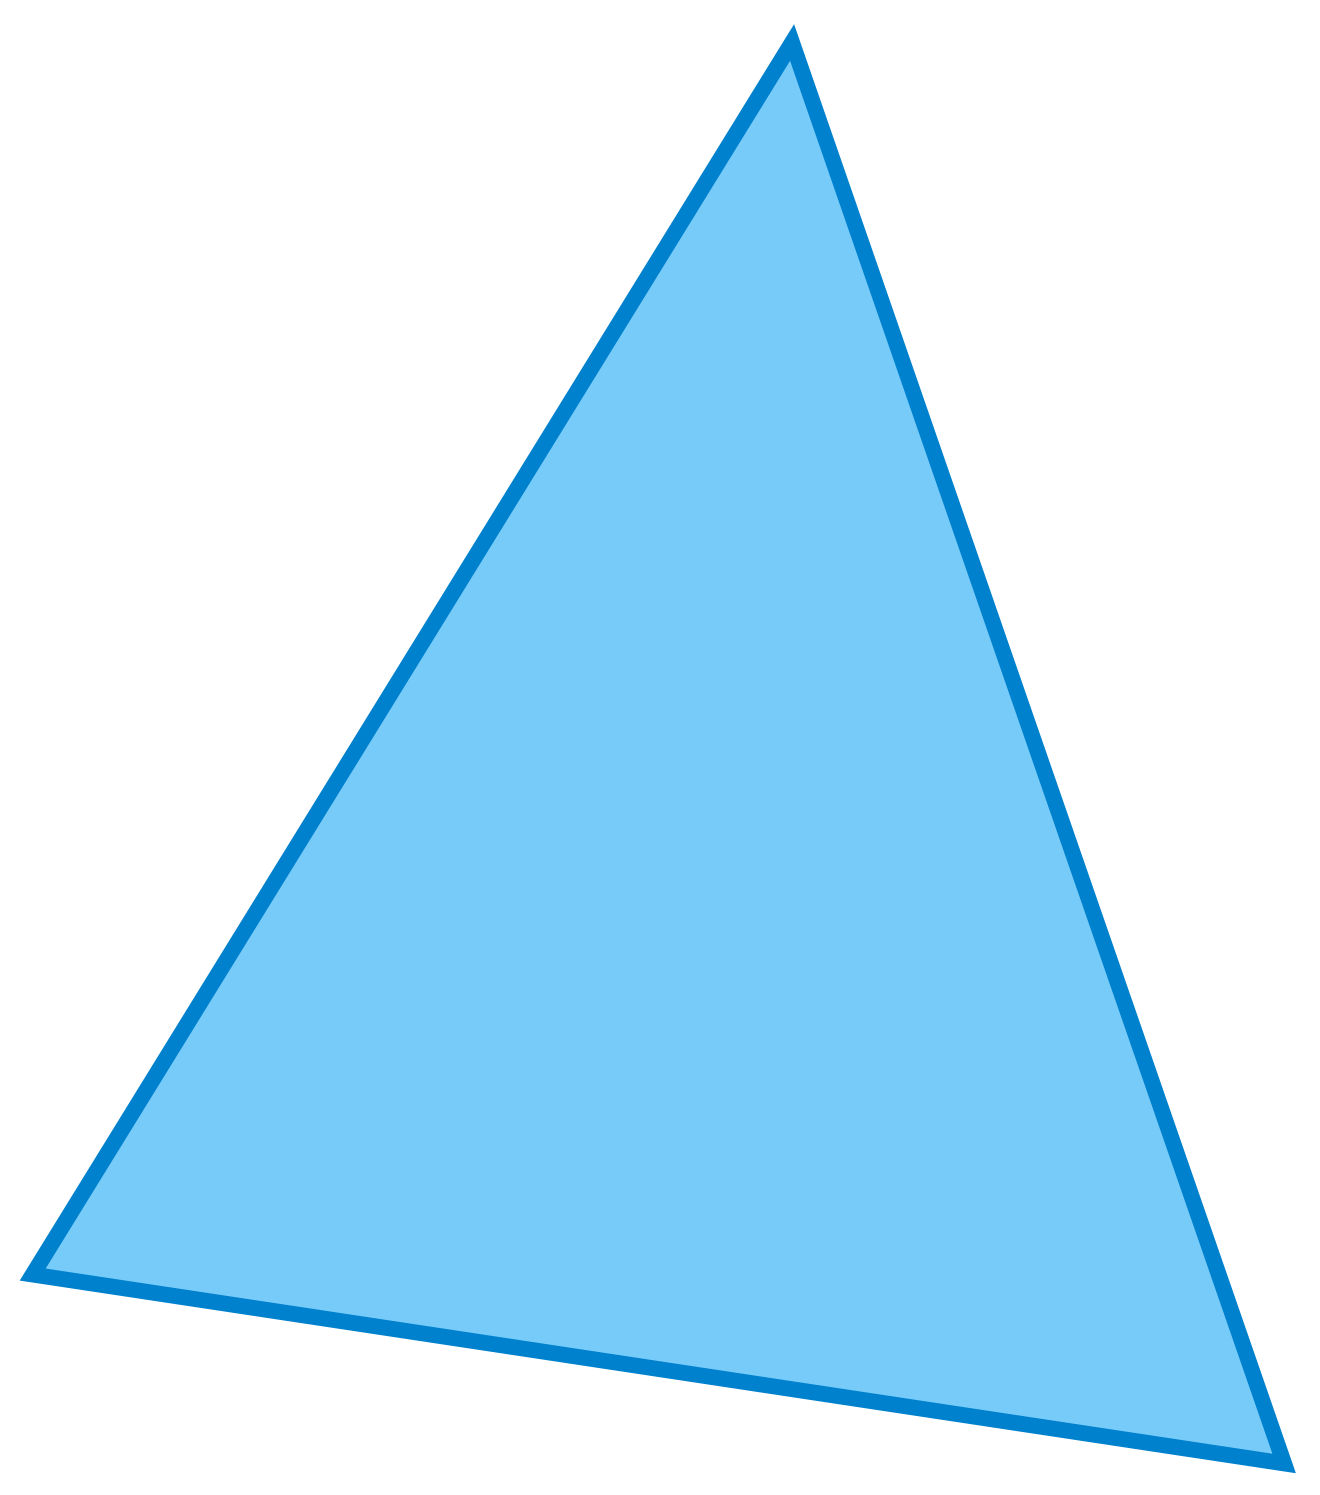 triangle light blue side view png #41355